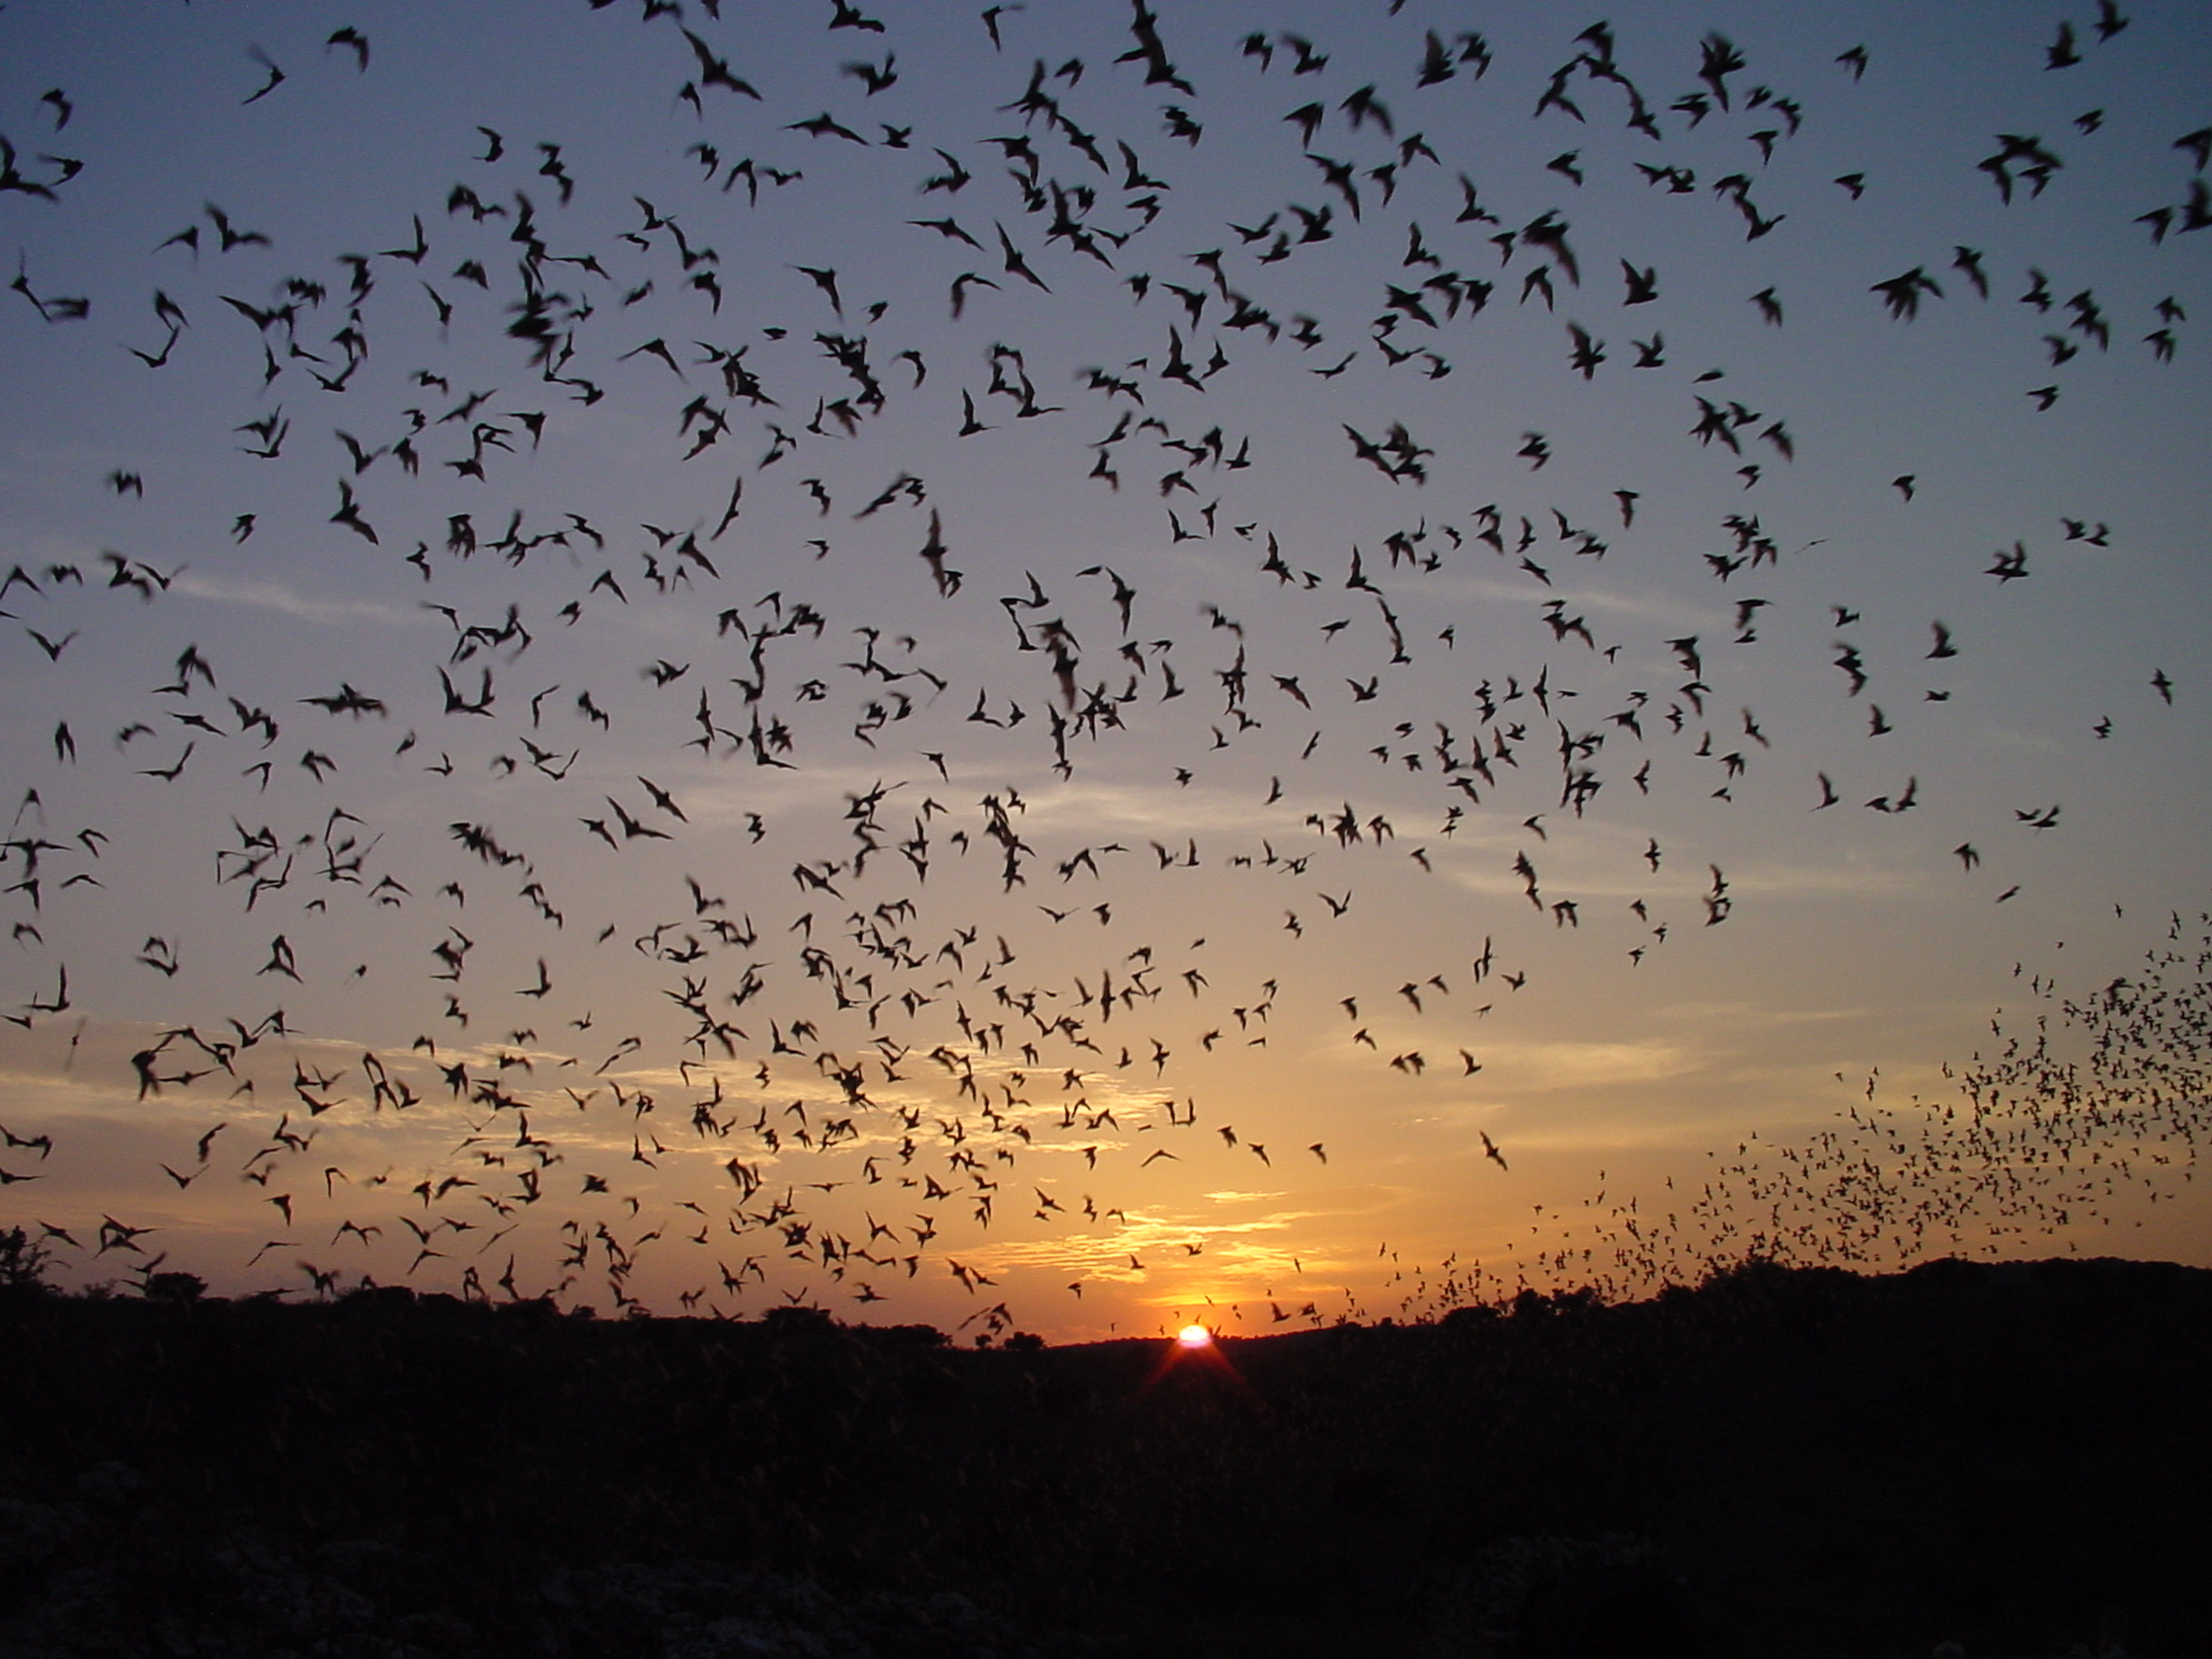 Bat Flight at sunset